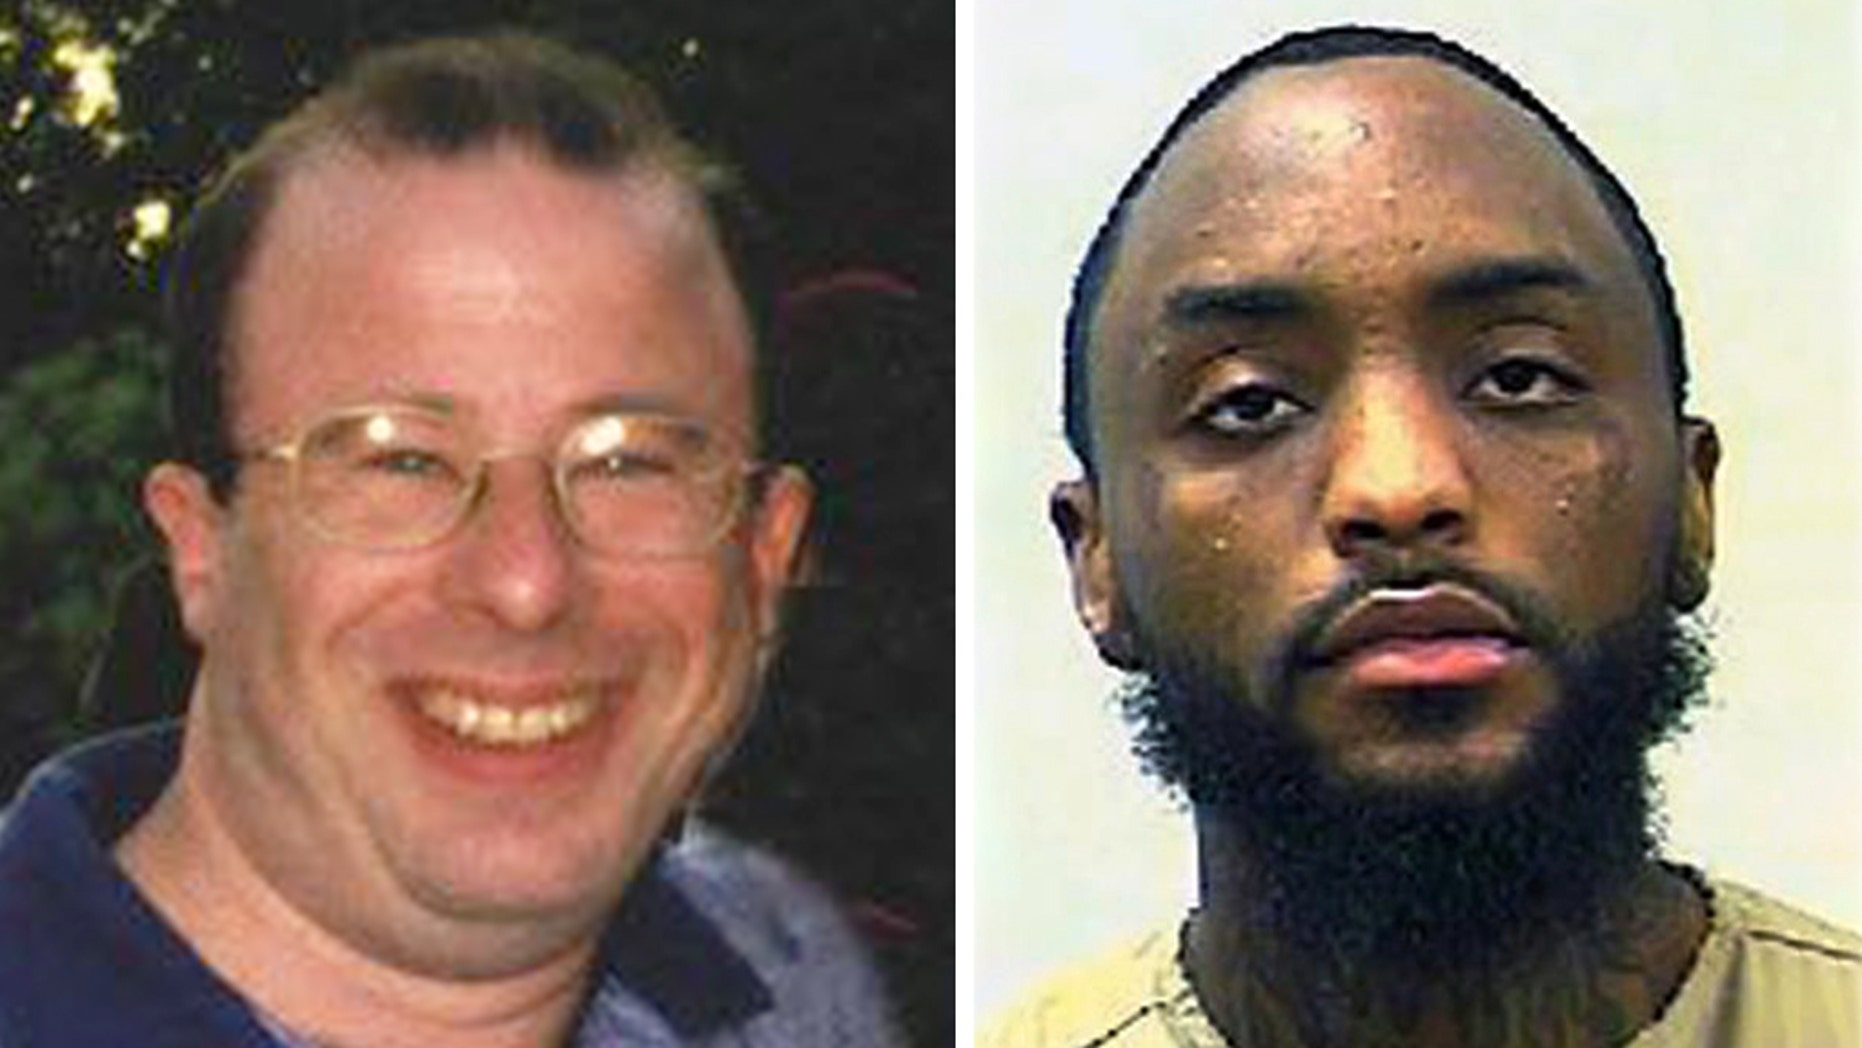 An Asbury Park Press freelance photographer and former staff photographer with Greater Media Newspapers, Jerry Wolkowitz, left, died Thursday. Jamil S. Hubbard has been charged in the assault.